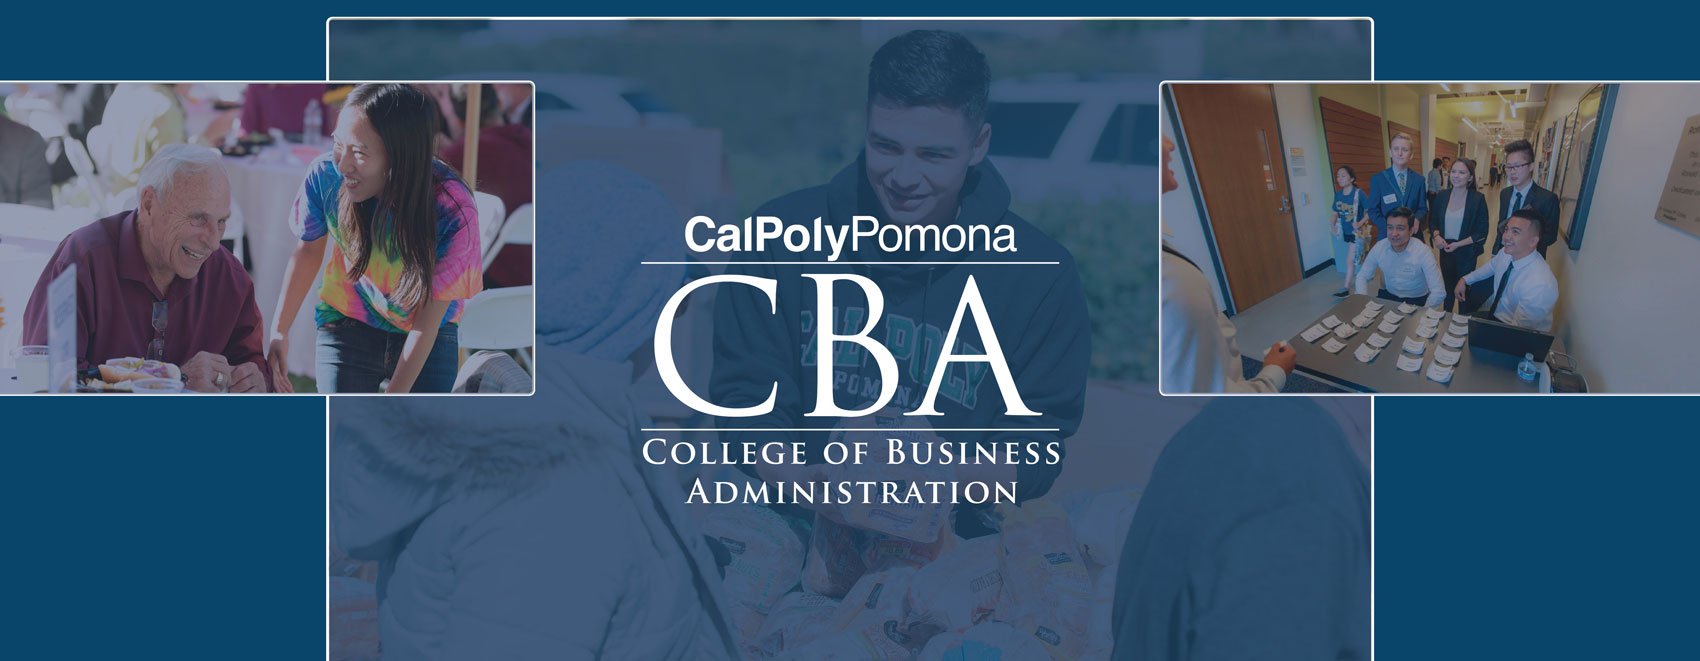 Find out more information about the CBA